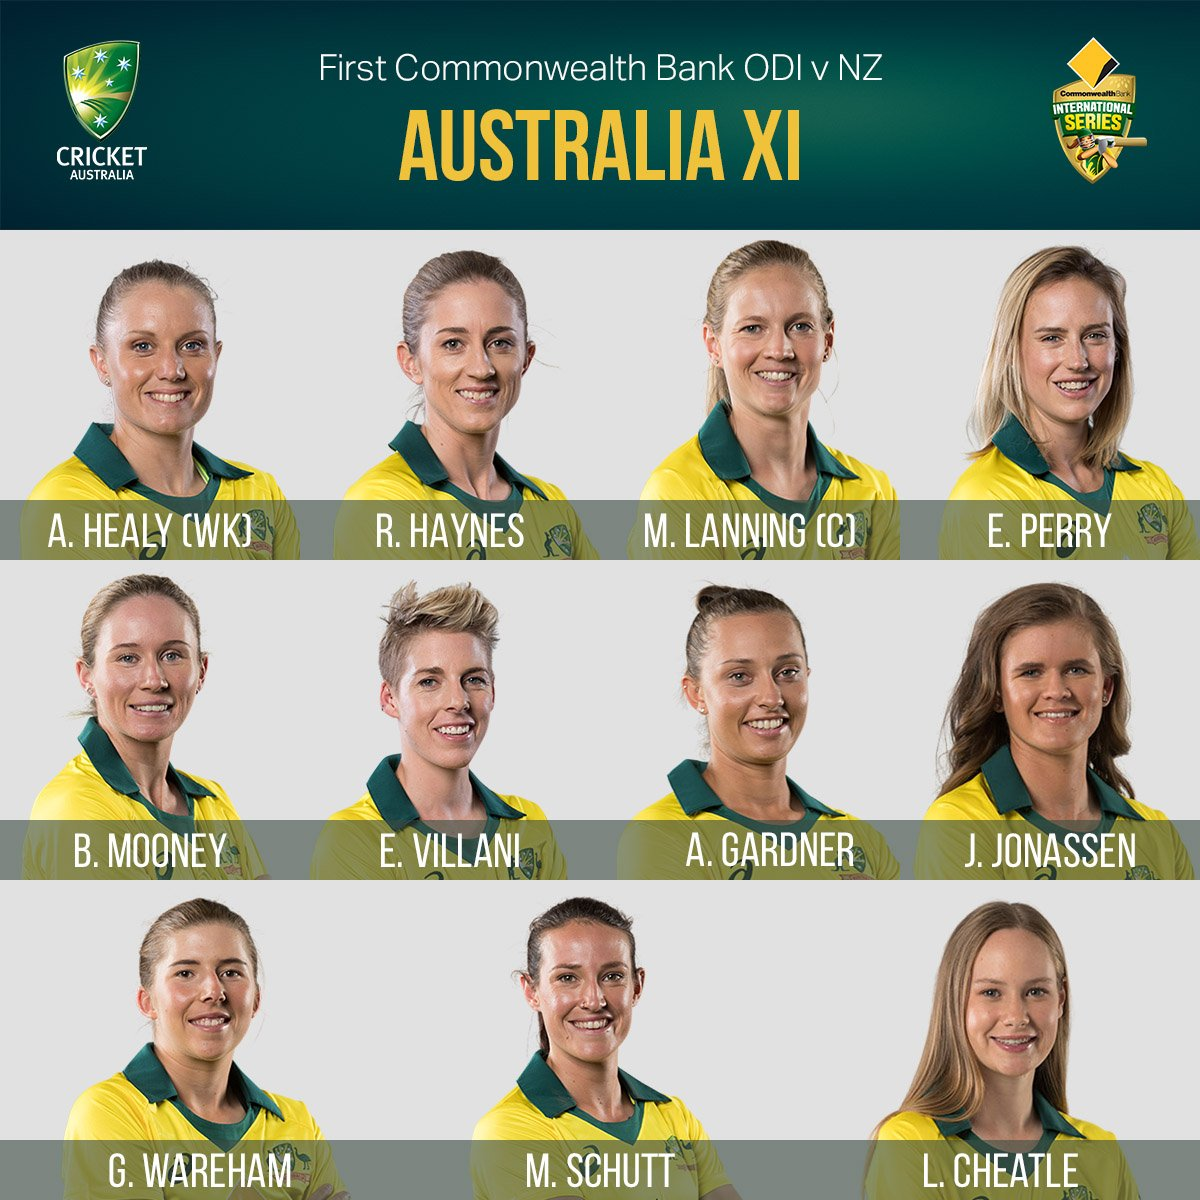 Here's the XI to take on the @WHITE_FERNS in the first ODI of the series!   Let's go team 💪 #AUSvNZ #WATCHME